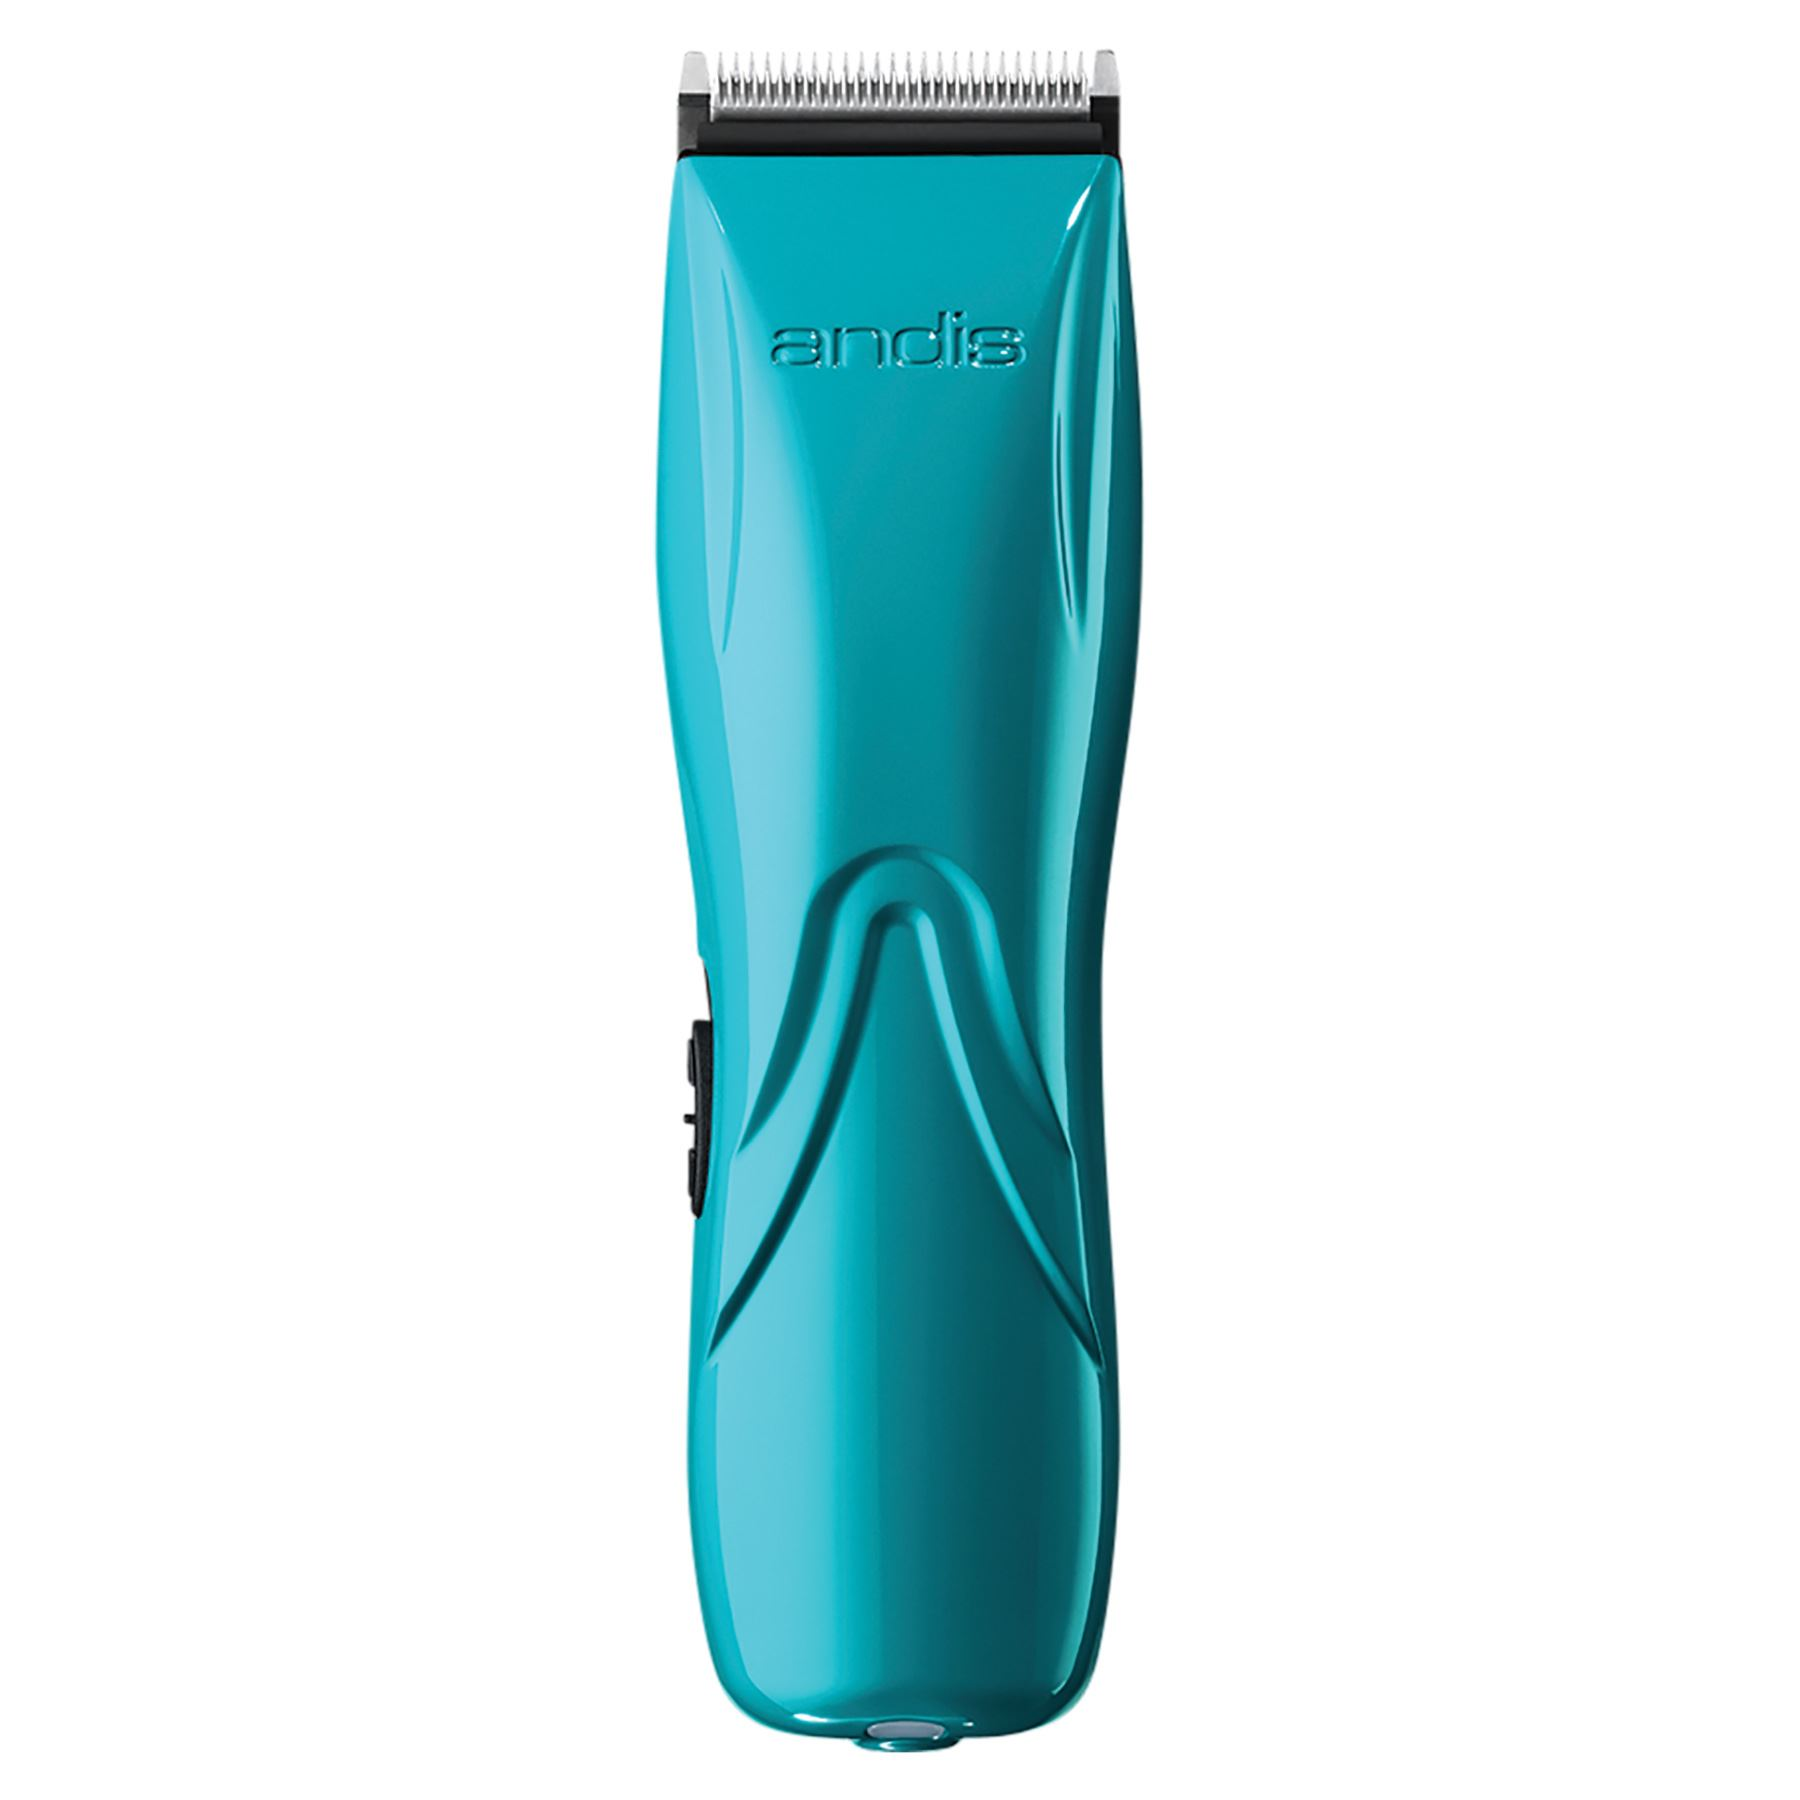 Cordless horse clippers horse care grooming full clipping 1 year warranty